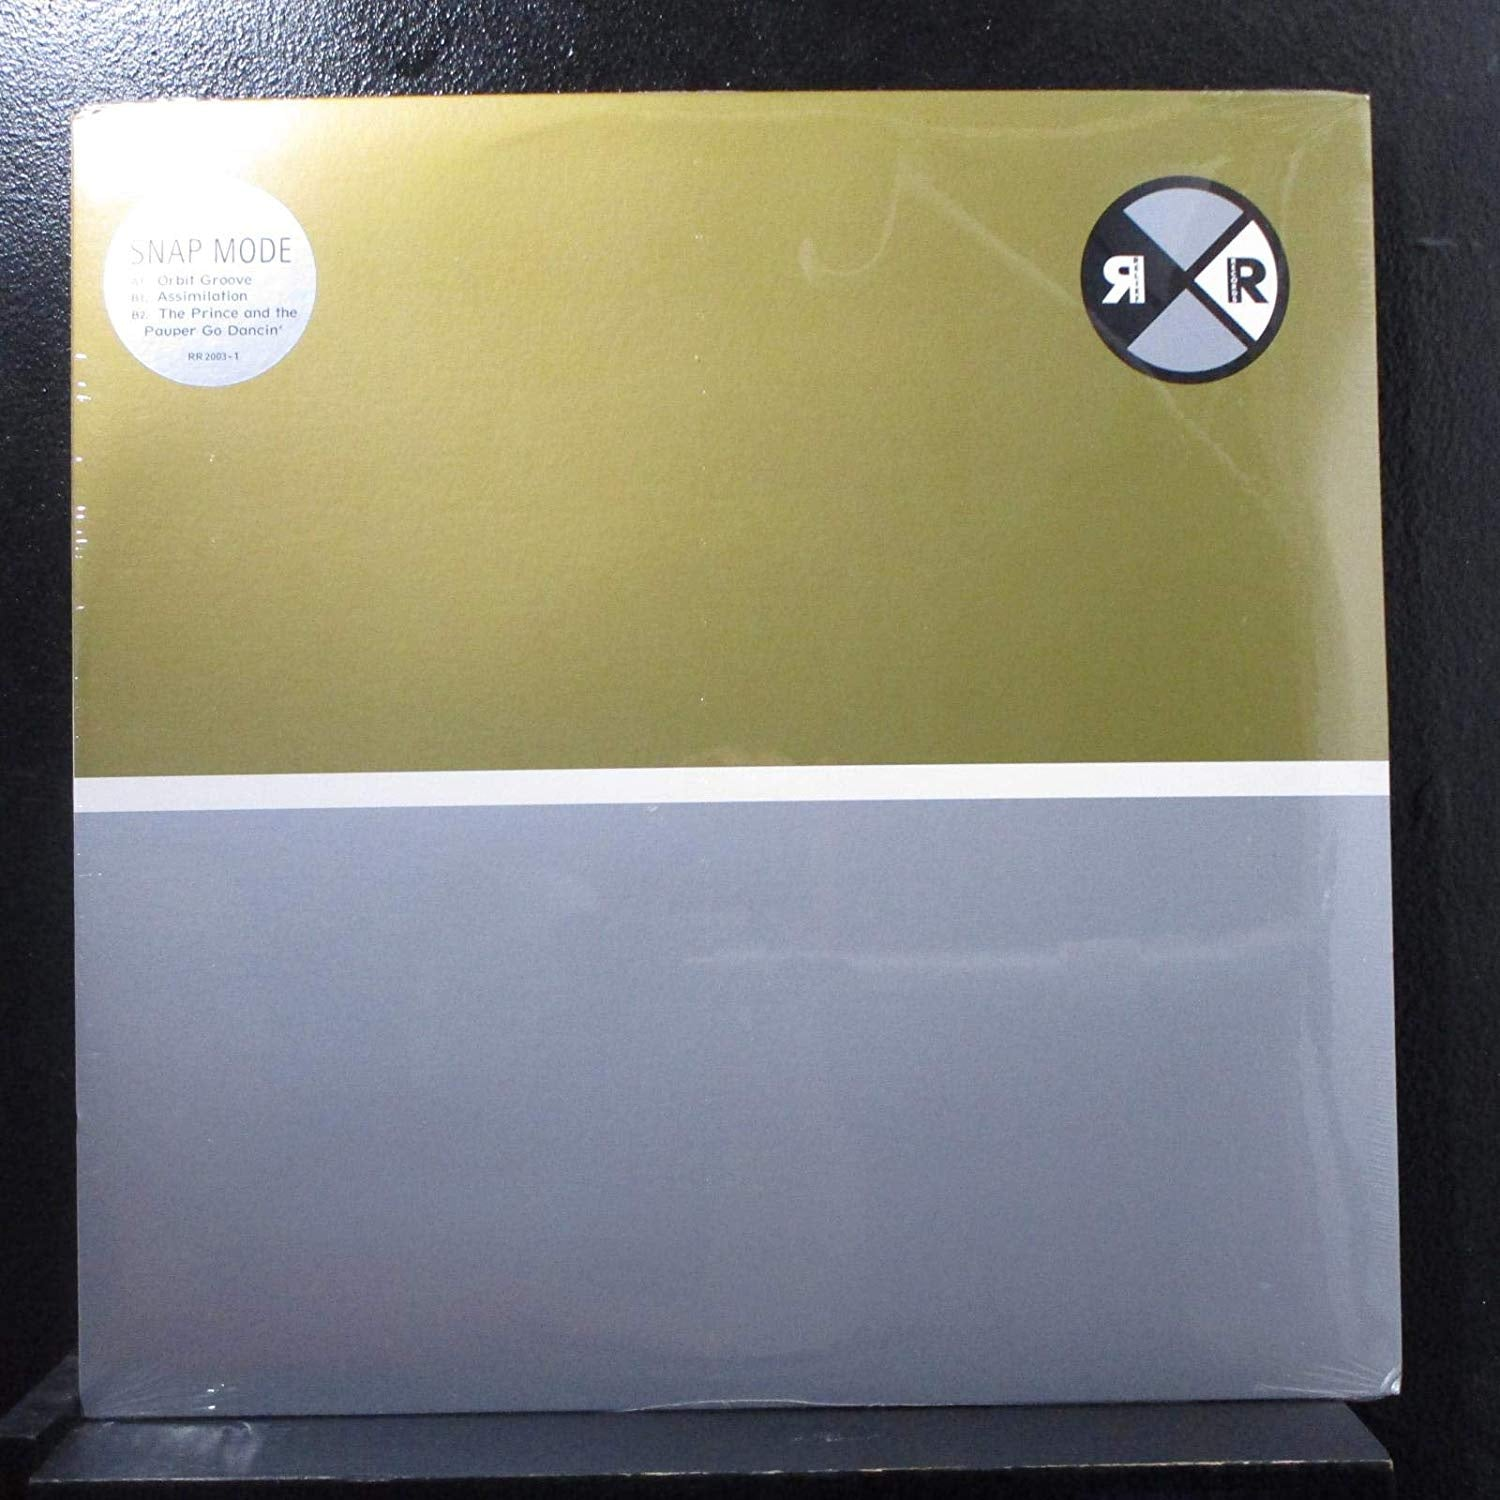 "Snap Mode ‎– Orbit Groove - New 12"" Ep Record 2001 Relief USA Chicago Vinyl - Techno / Electronic"